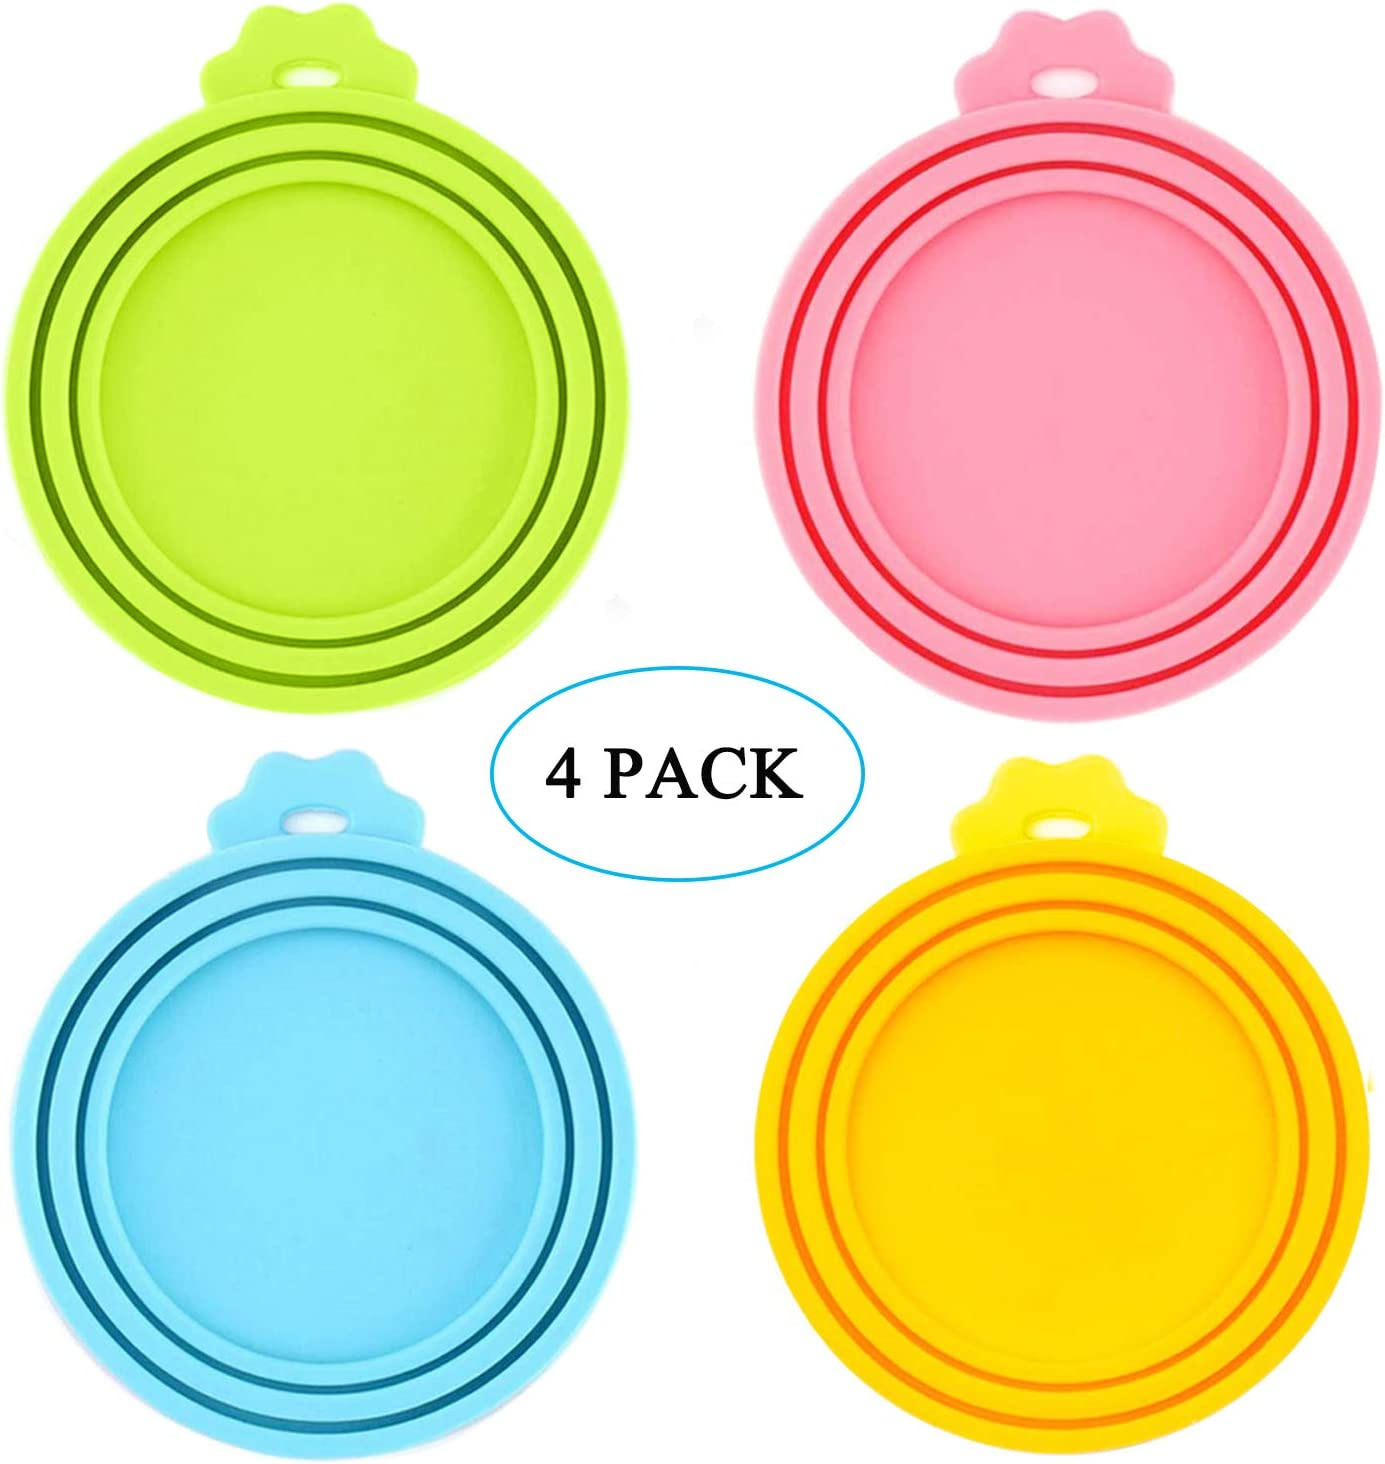 IVIA PET Food Can Lids, Universal BPA Free Silicone Can Lids Covers for Dog and Cat Food, One Can Cap Fit Most Standard Size Canned Dog Cat Food(4 Pack Multicolor